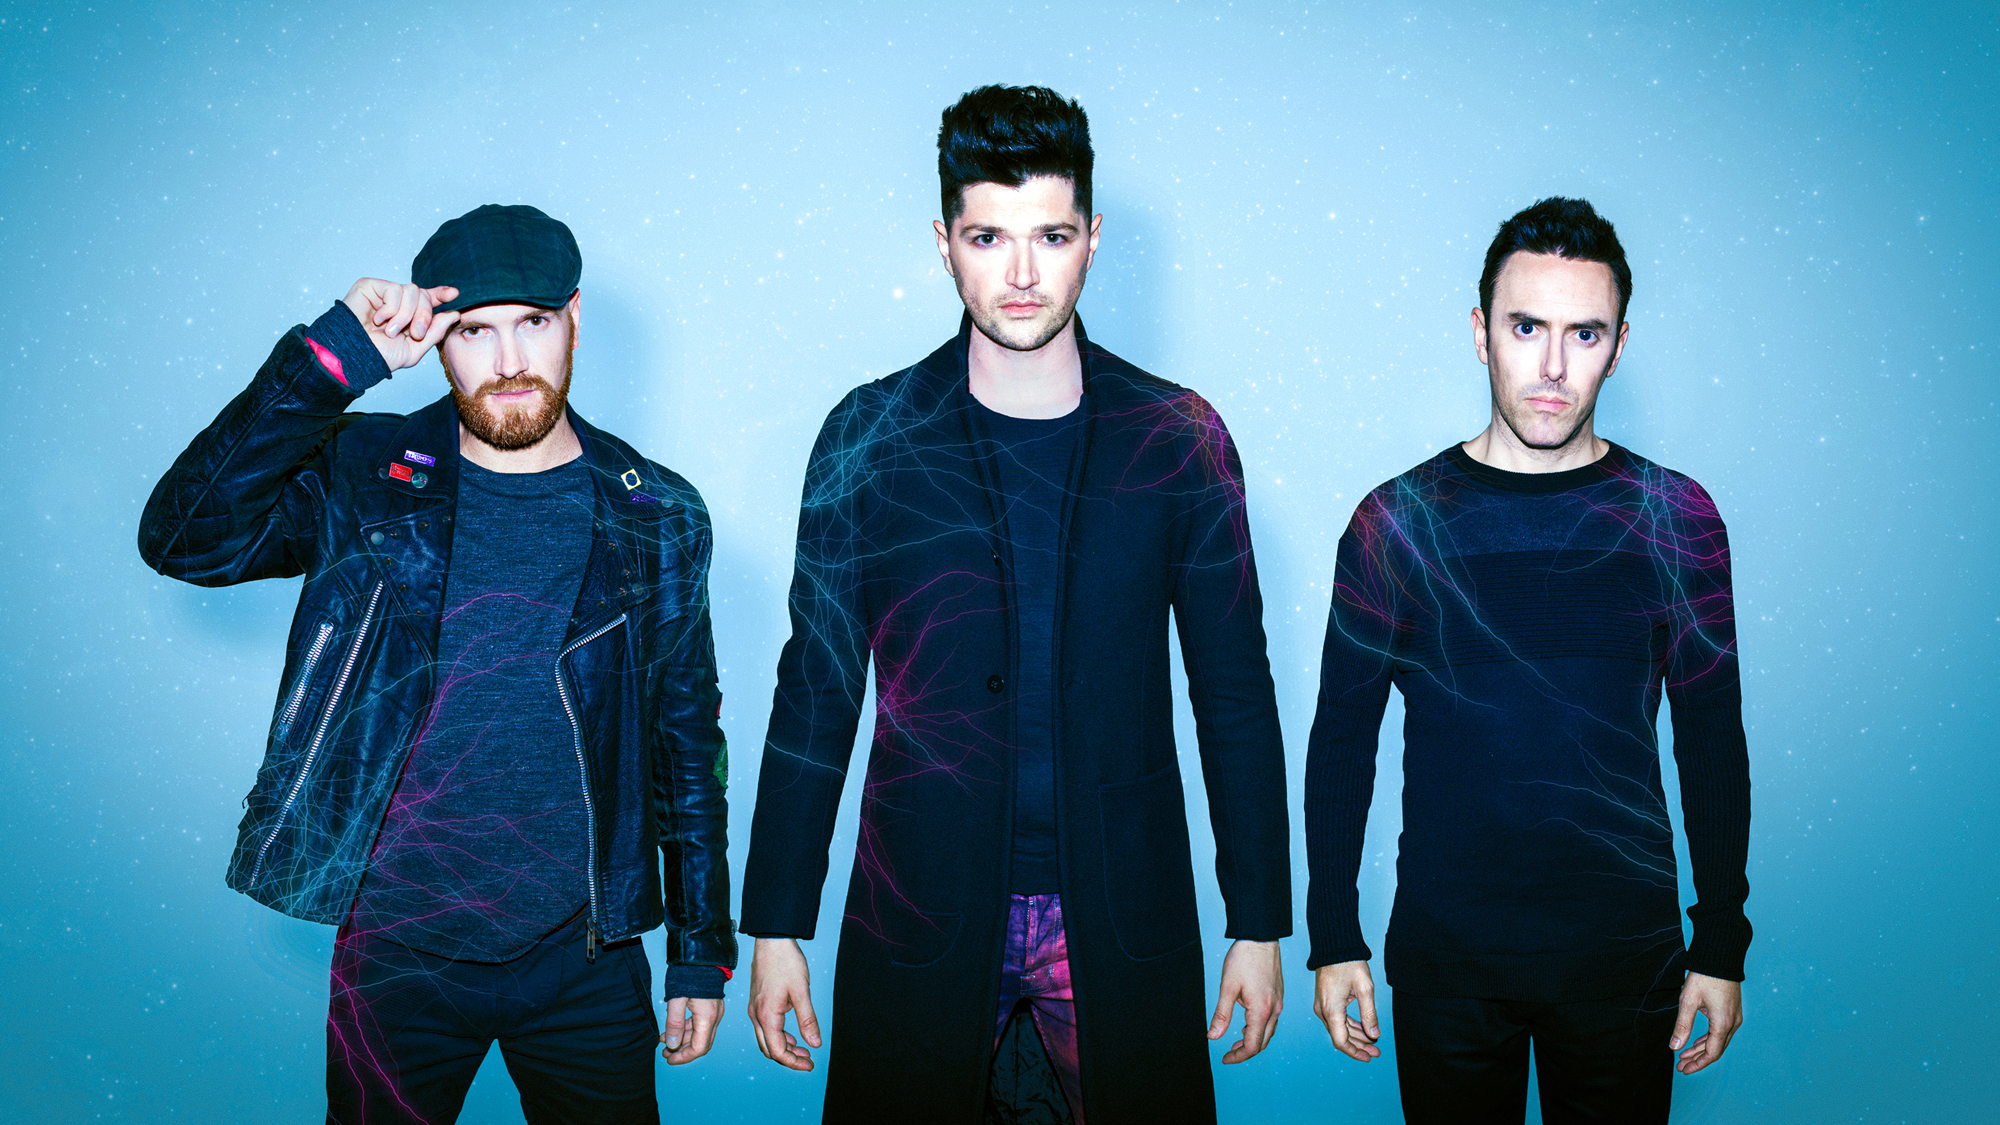 The script home